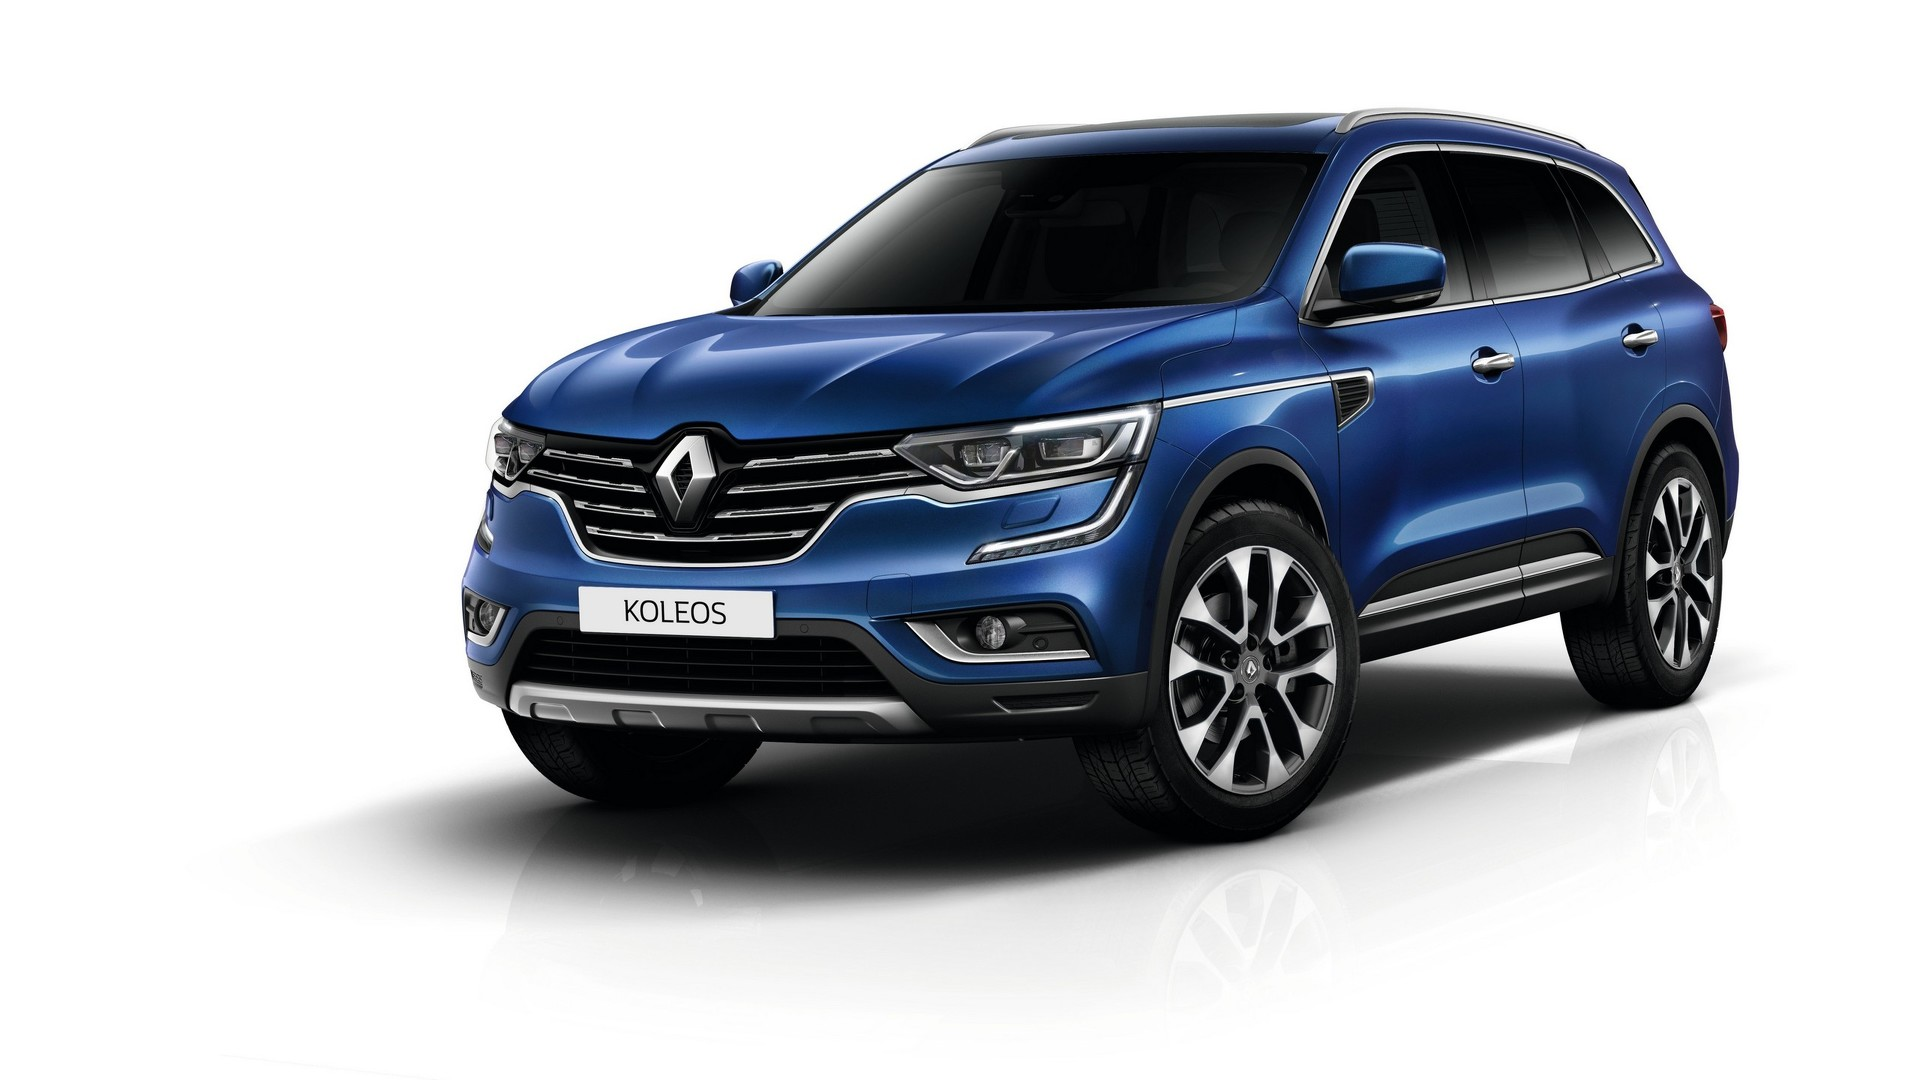 2016 renault koleos lands in china as brand s flagship model. Black Bedroom Furniture Sets. Home Design Ideas